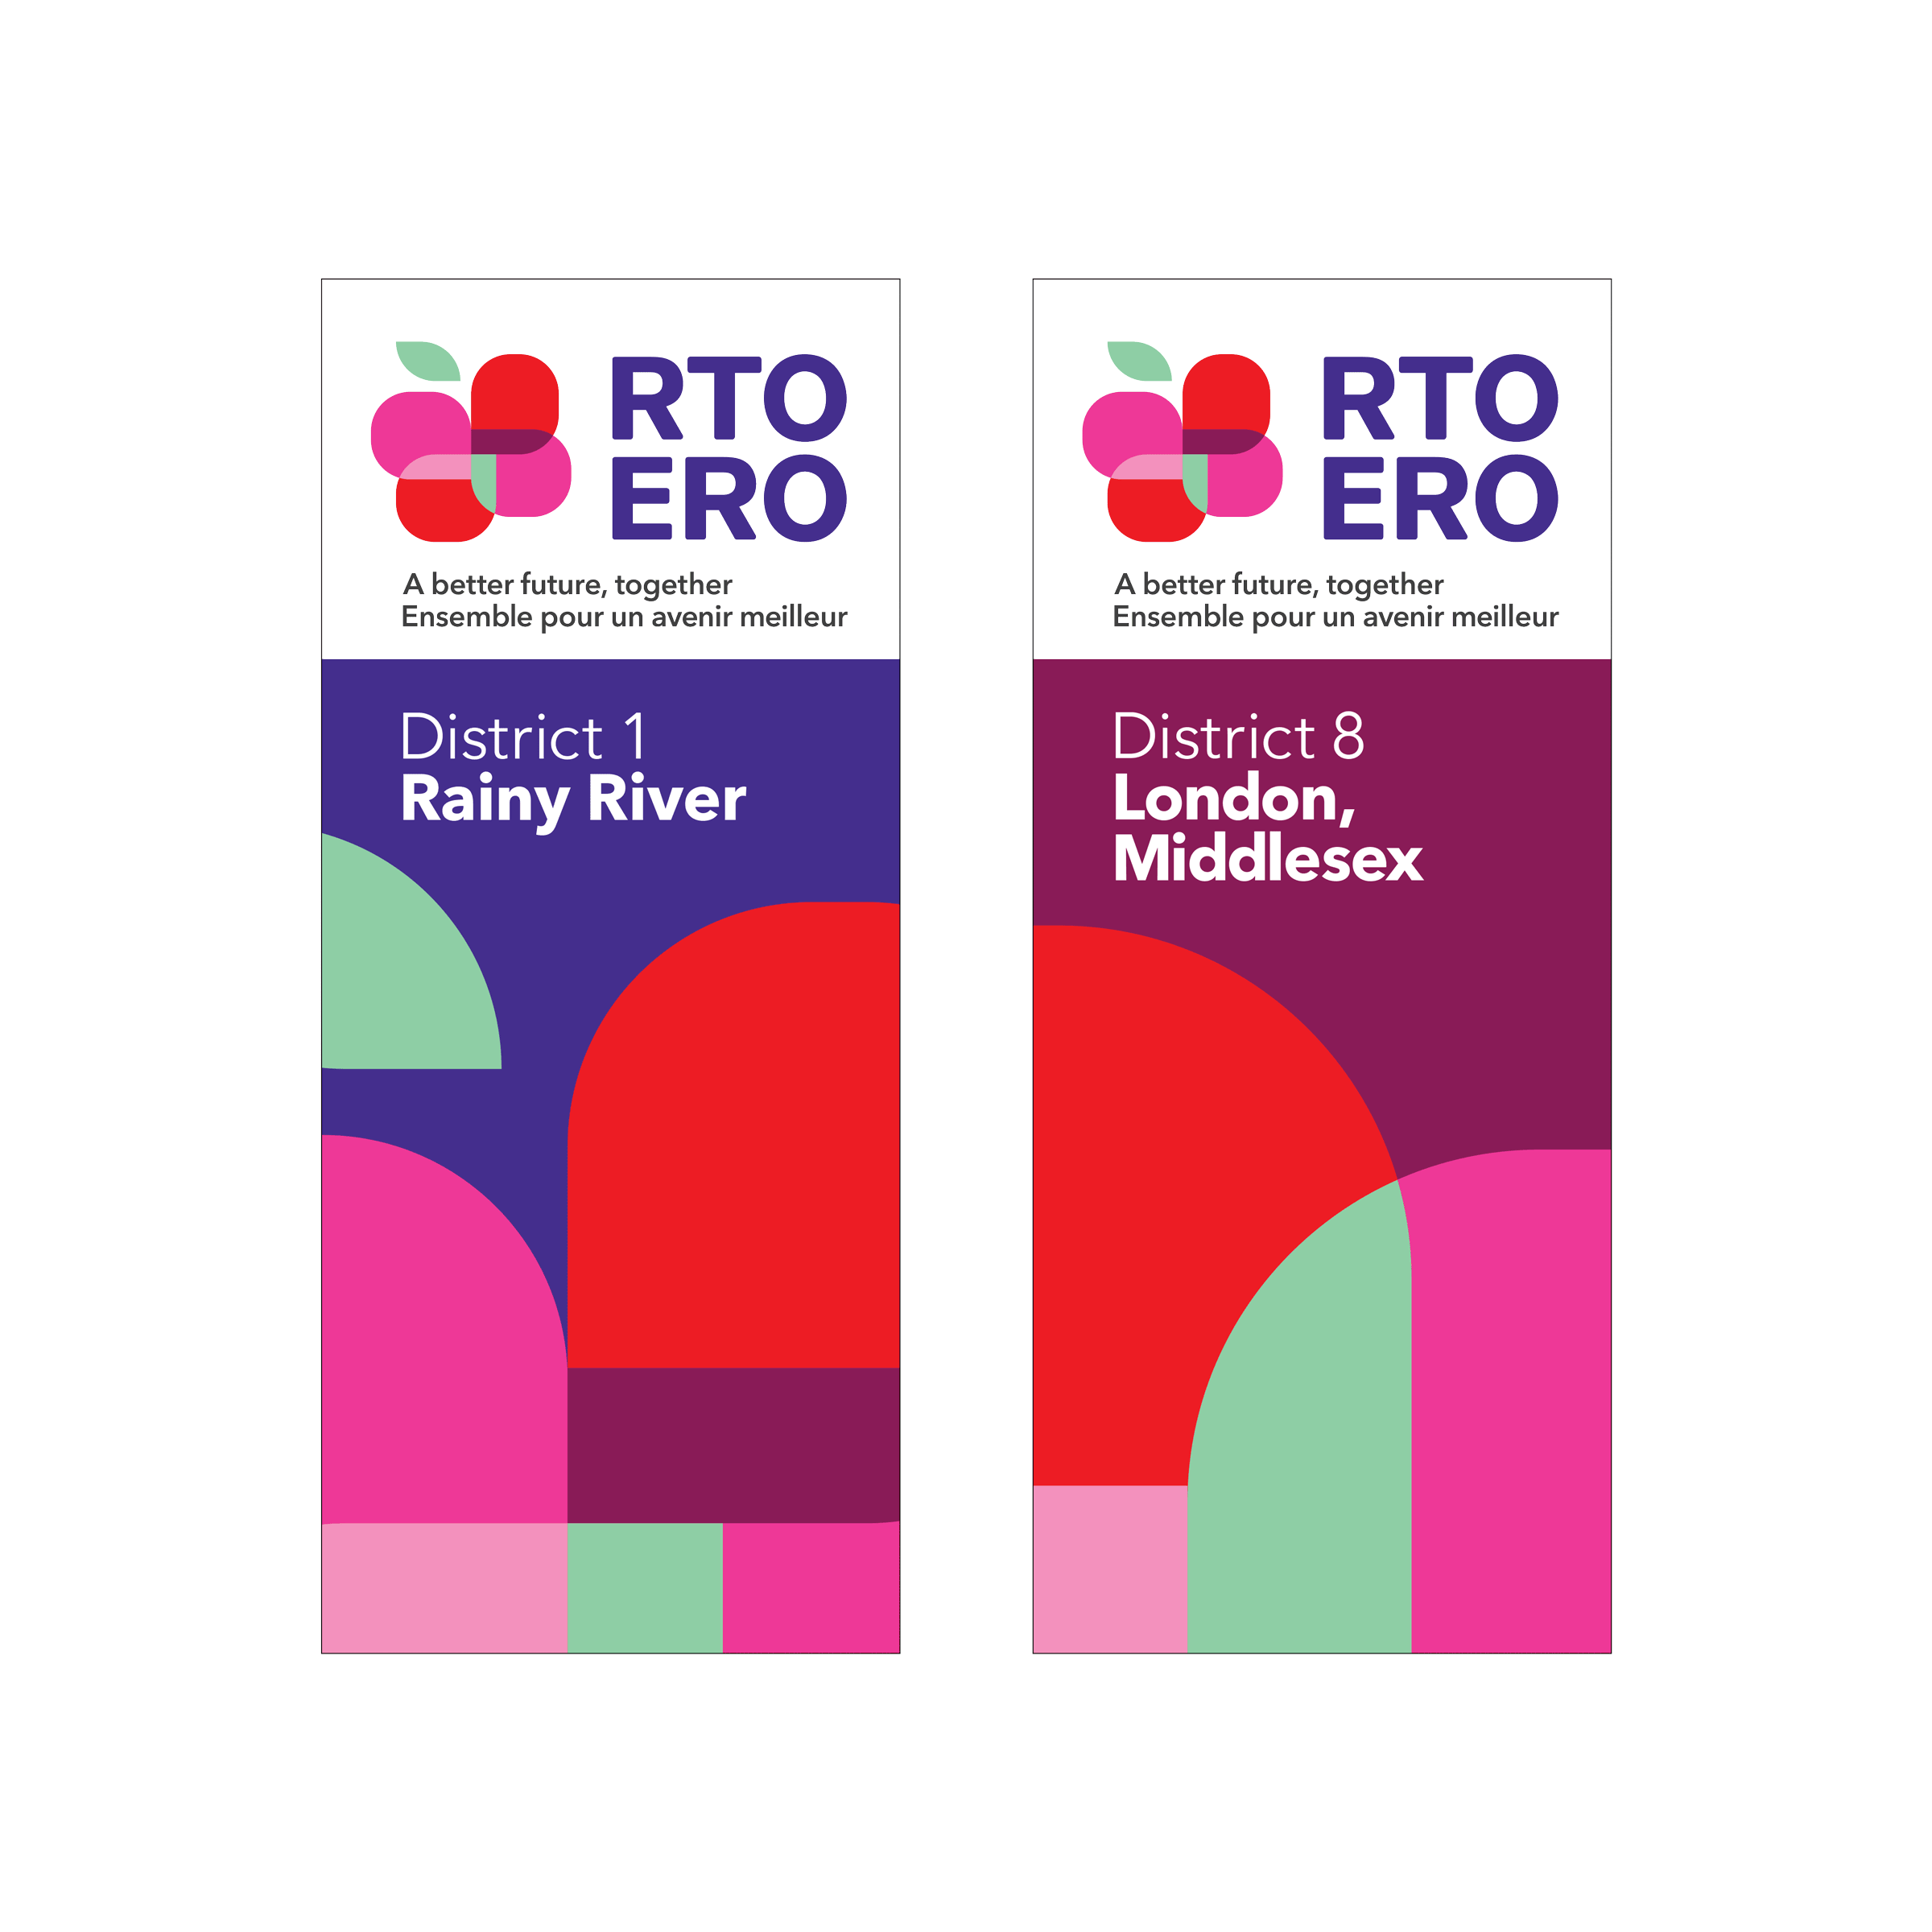 Brands_RTO_banners.png